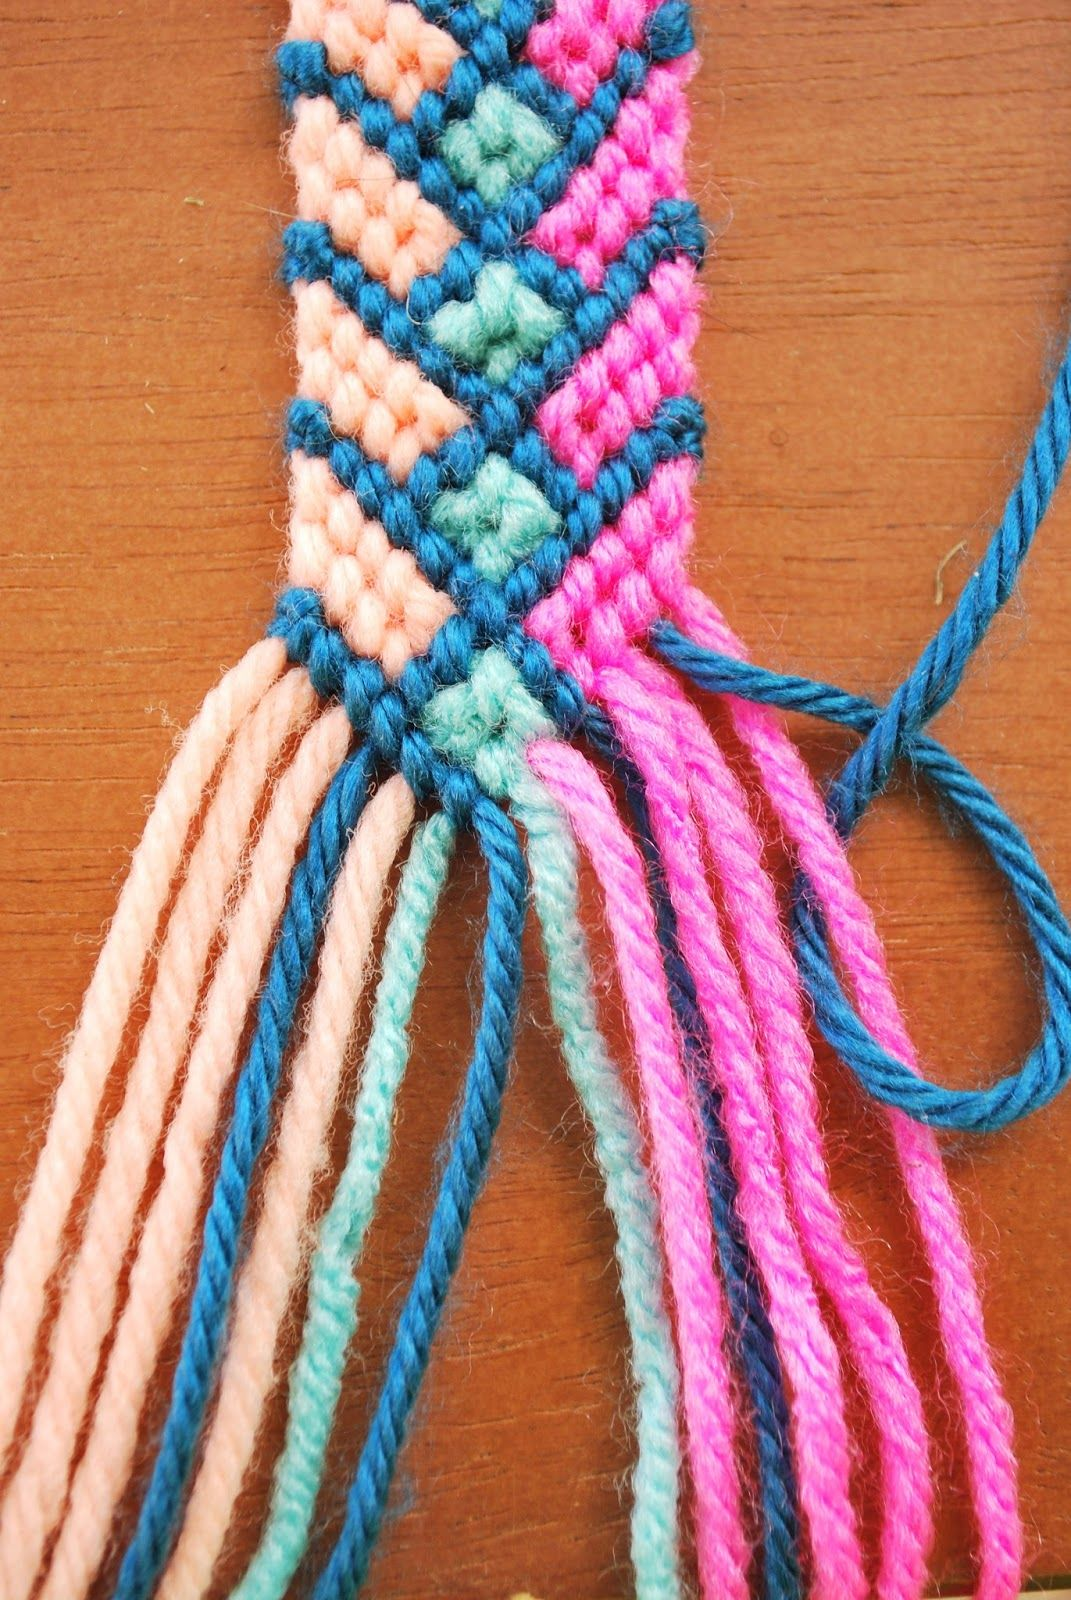 pin floss pretty the instead in detailed example thread oh so diy crazy photographs is bracelet made with instructions complicated embroidery diaries of friendship yarn